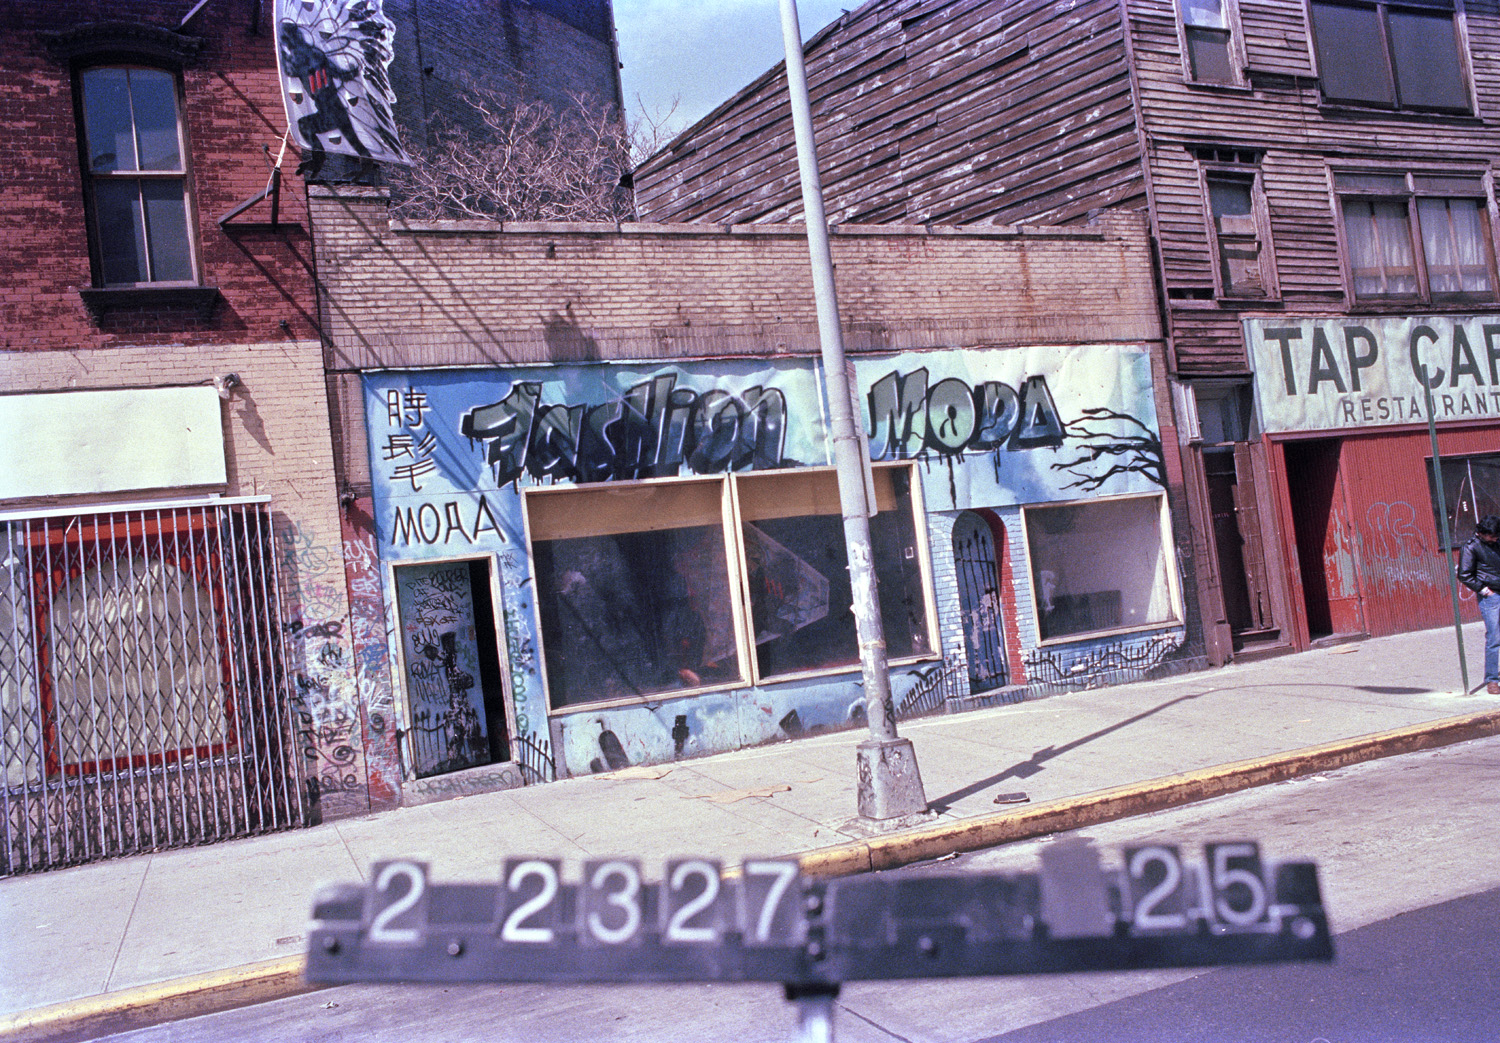 2803 Third Avenue, South Bronx, ca. 1985. Fashion Moda was an important artist space in the birth of Hip Hop and Graffiti culture. DOF Tax Photograph Collection, NYC Municipal Archives.